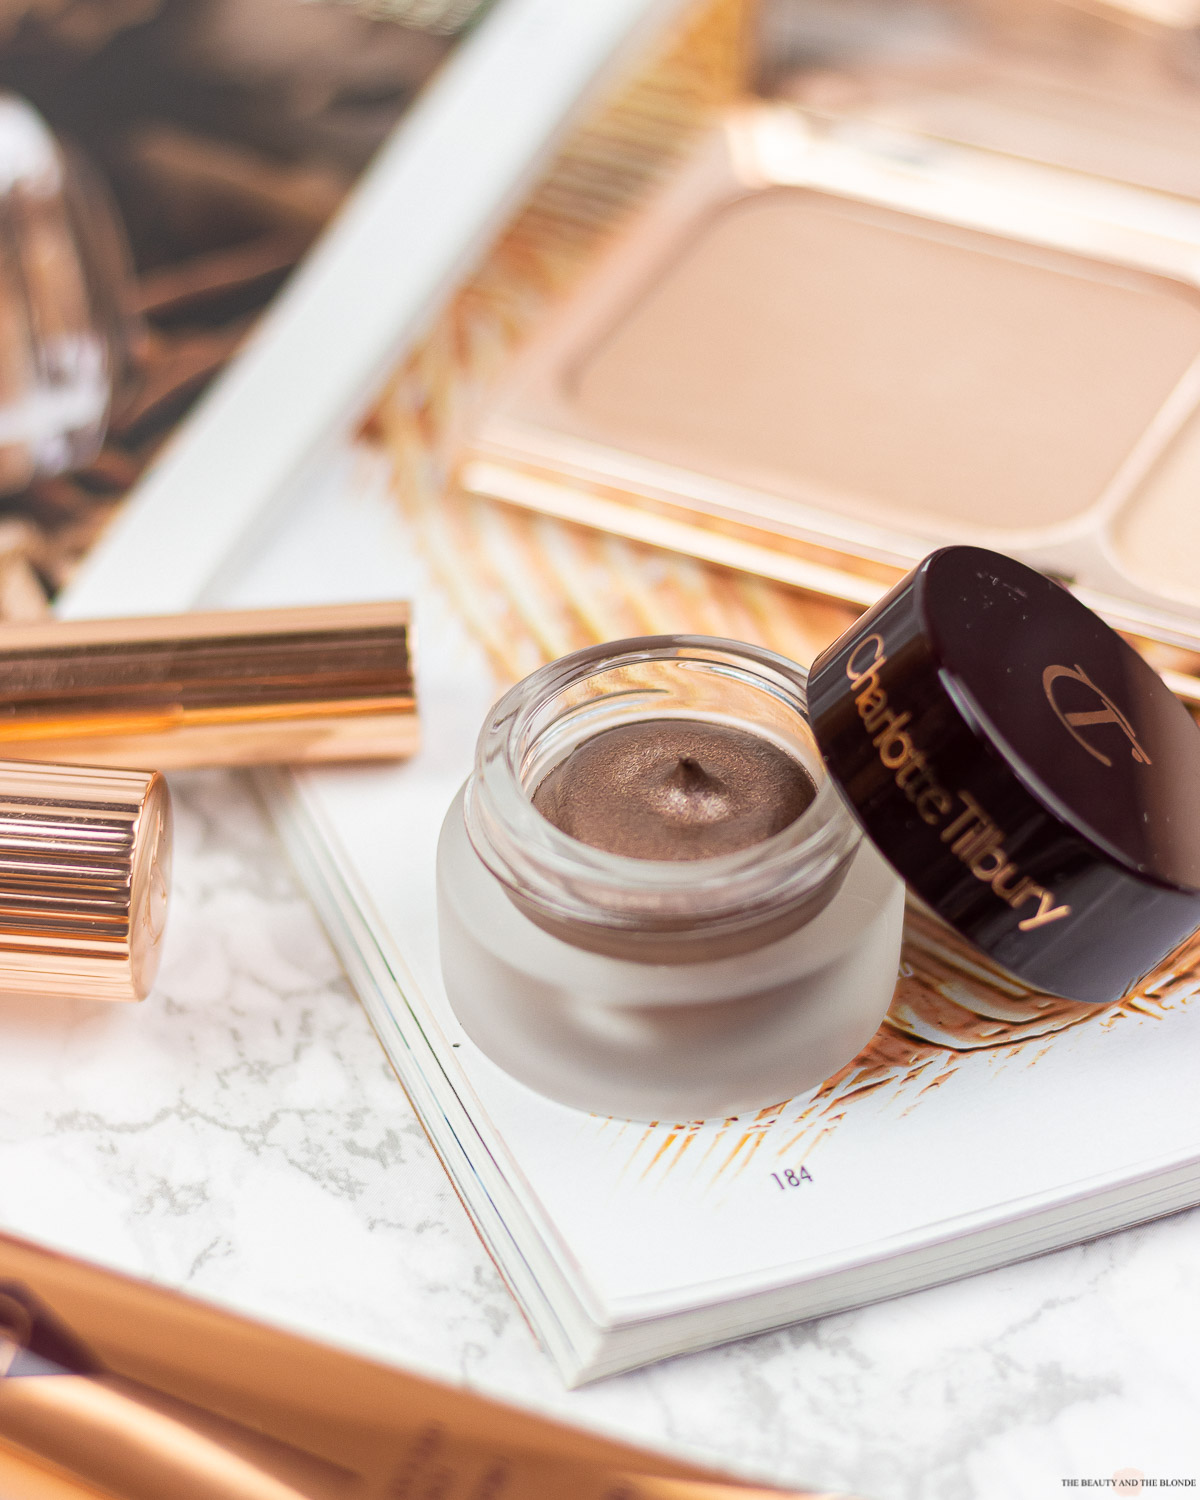 Charlotte Tilbury Eyes to Mesmerise Mona Lisa Review